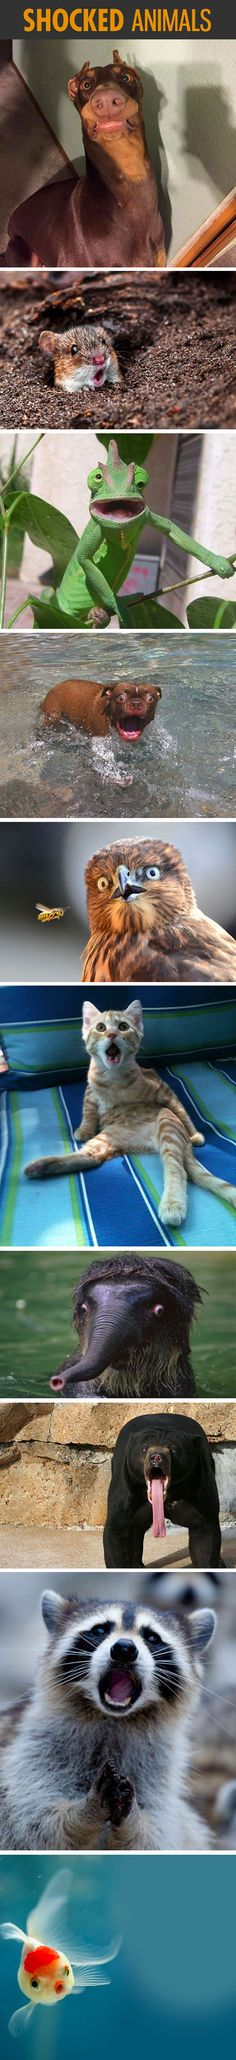 Some shocked animals...